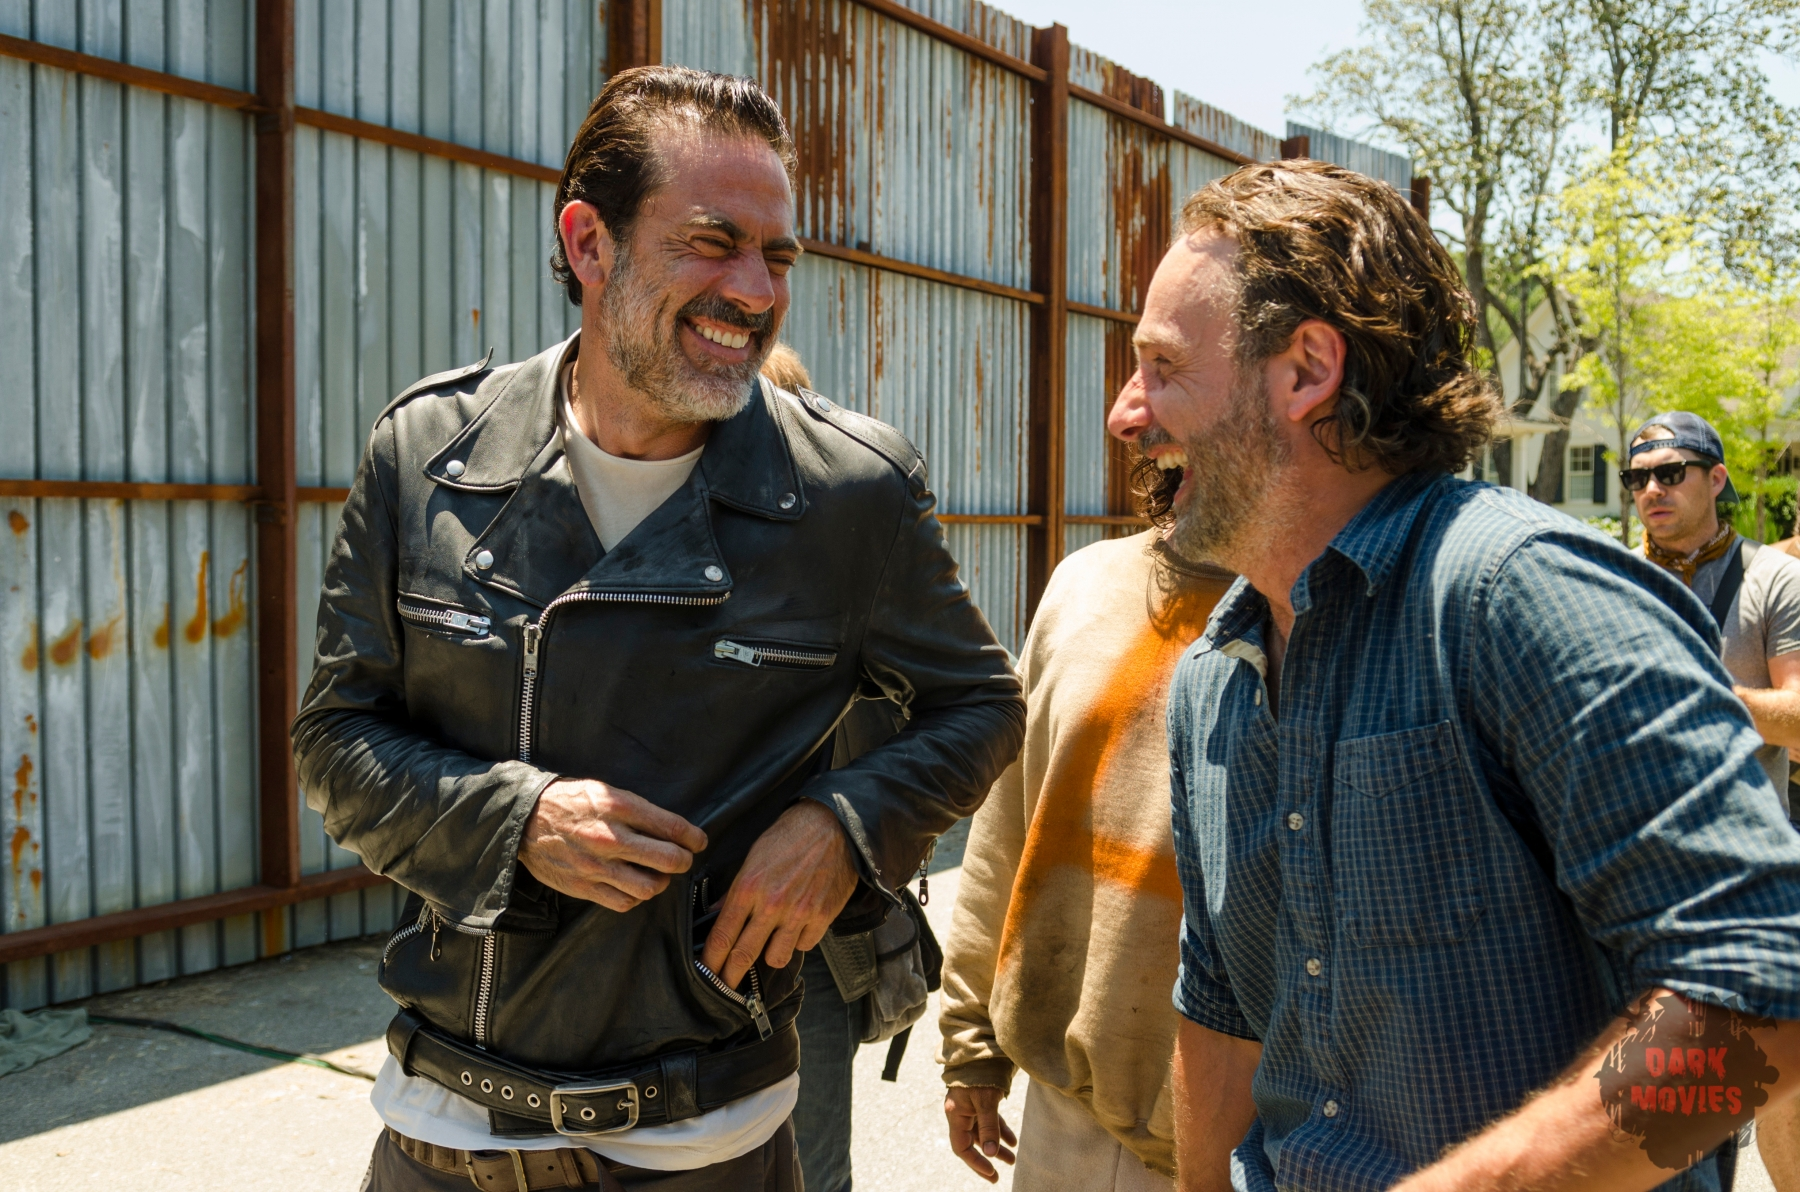 Andrew Lincoln as Rick Grimes, Jeffrey Dean Morgan as Negan, Norman Reedus as Daryl Dixon; BTS - The Walking Dead _ Season 7, Episode 4 - Photo Credit: Gene Page/AMC